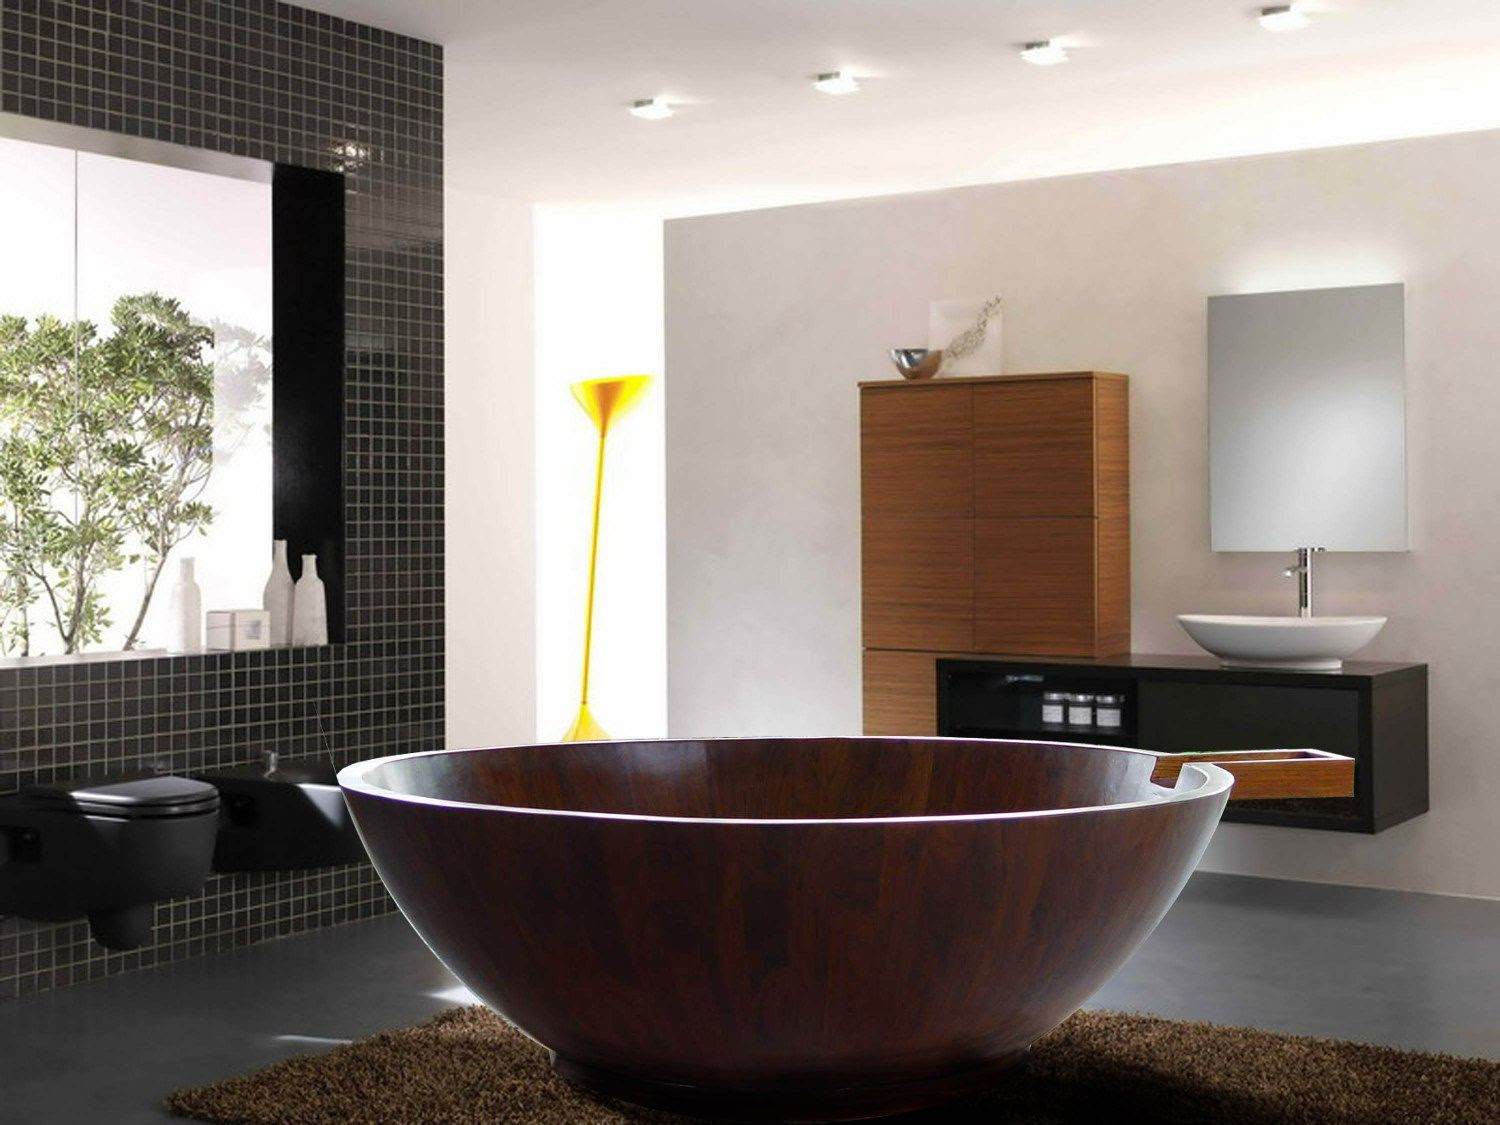 20 Bathrooms With Beautiful Round Tubs